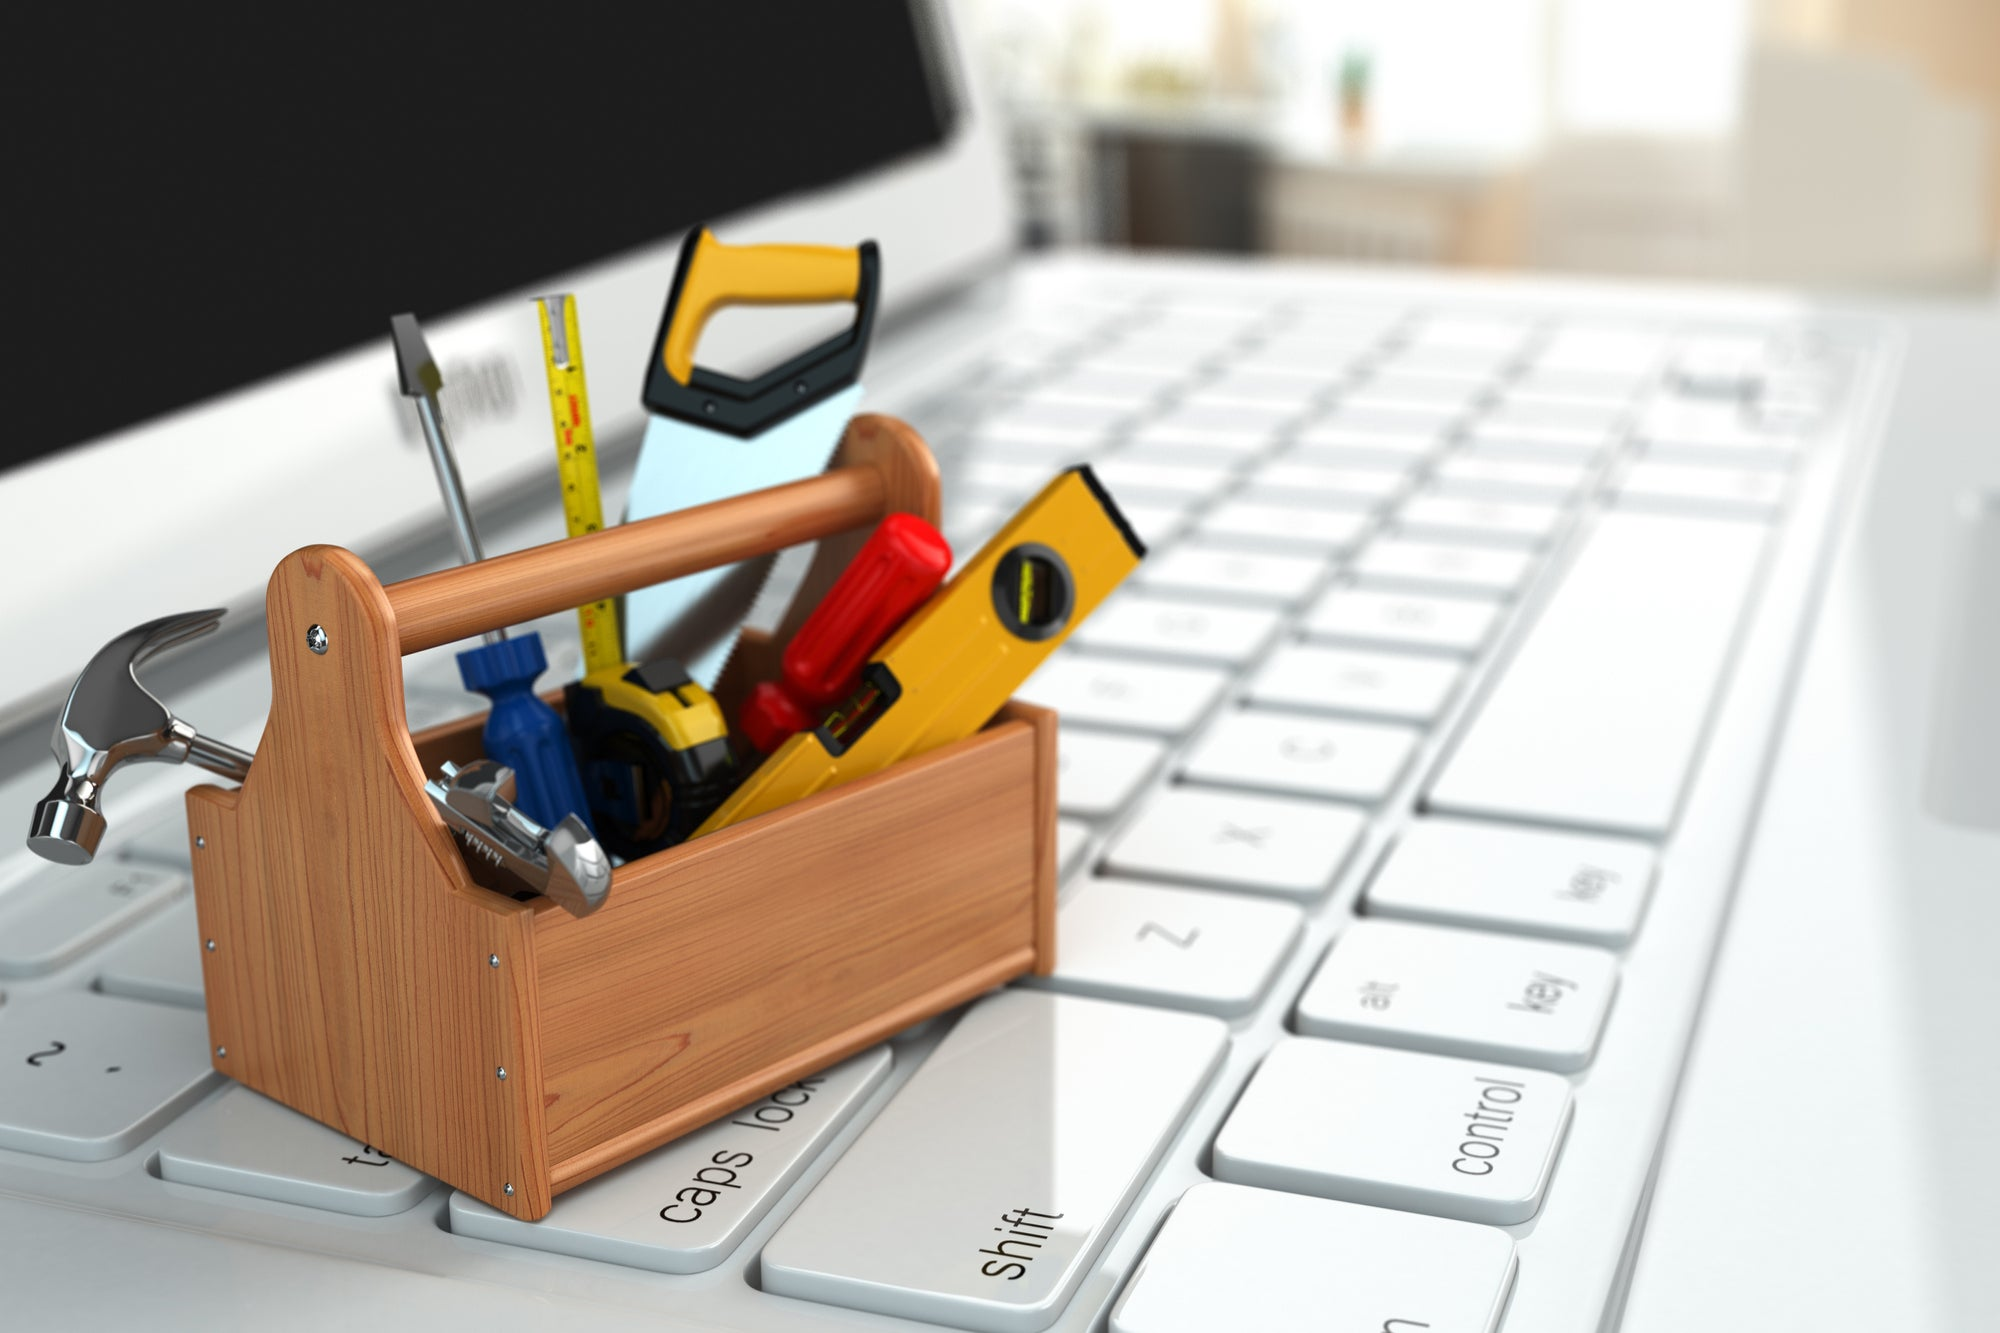 5 Kinds of Technology Your Business May Find Useful